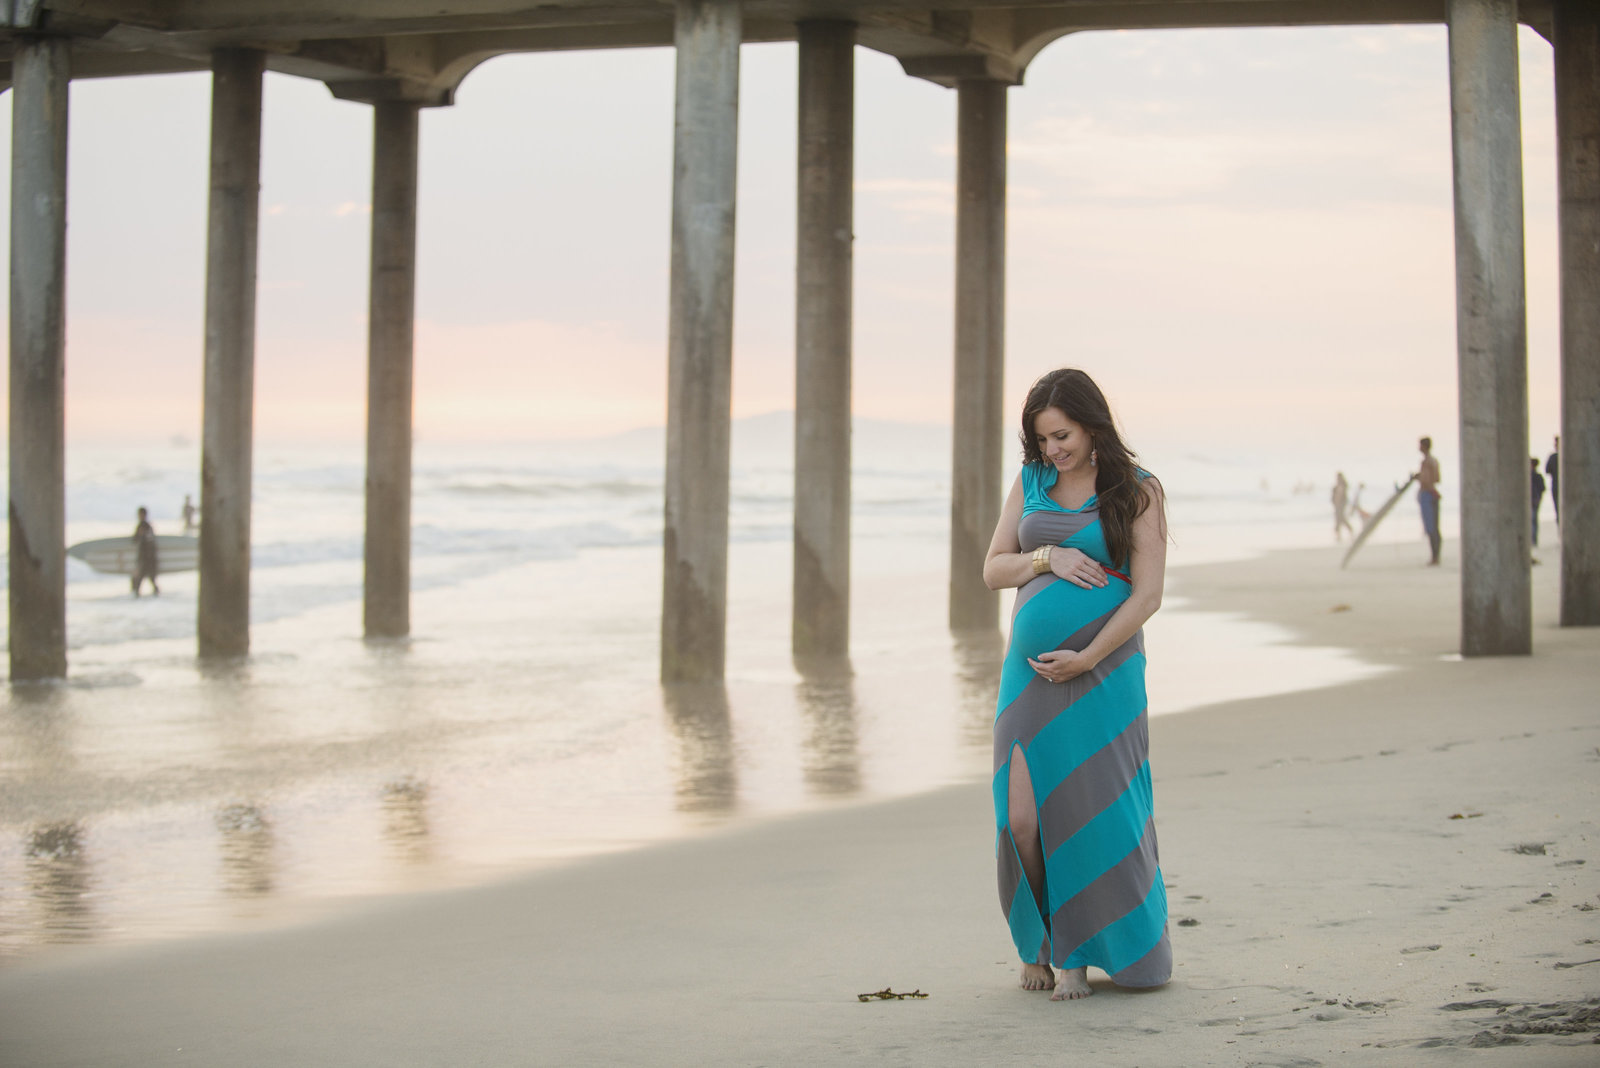 139_20120817_jarrin maternity huntington beach